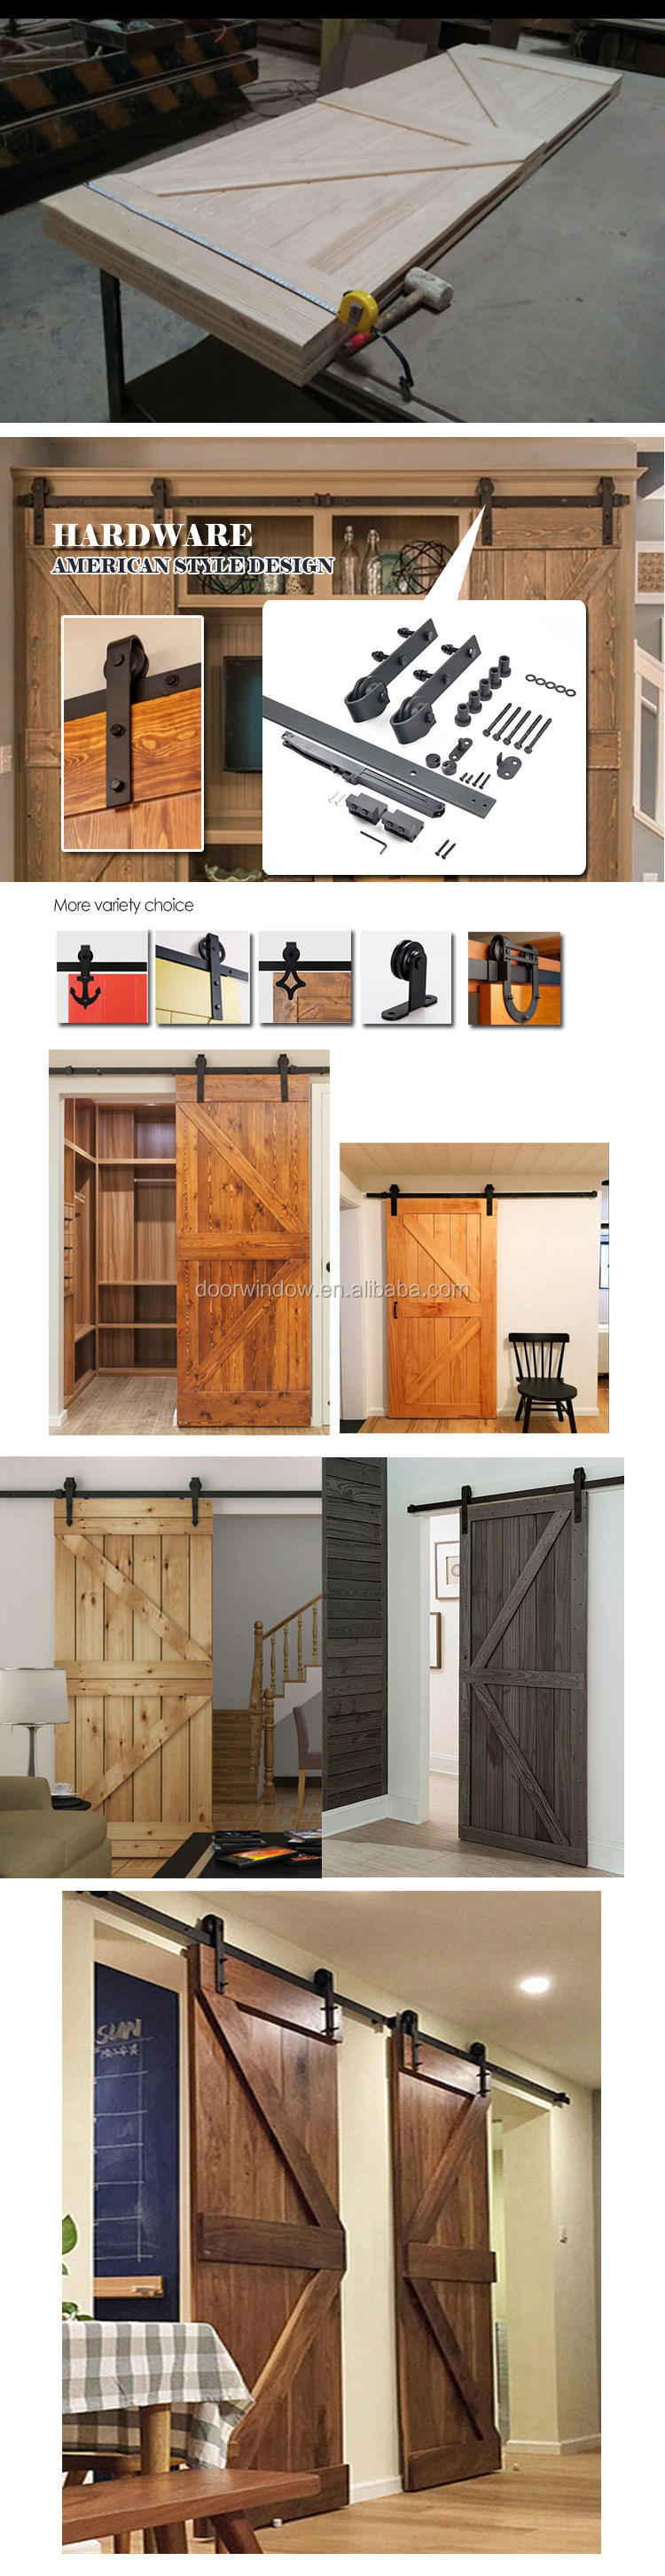 North central US OAK wood sliding door indoor doors for a house